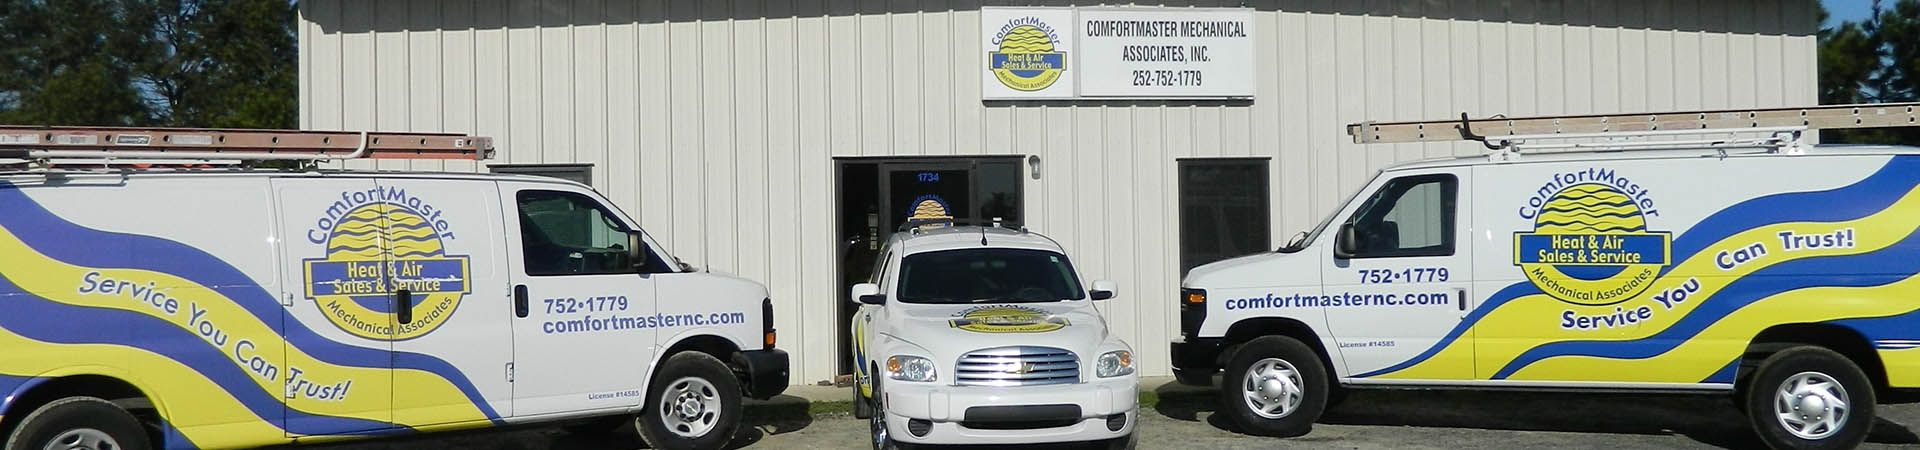 The NATECertified technicians at ComfortMaster Mechanical